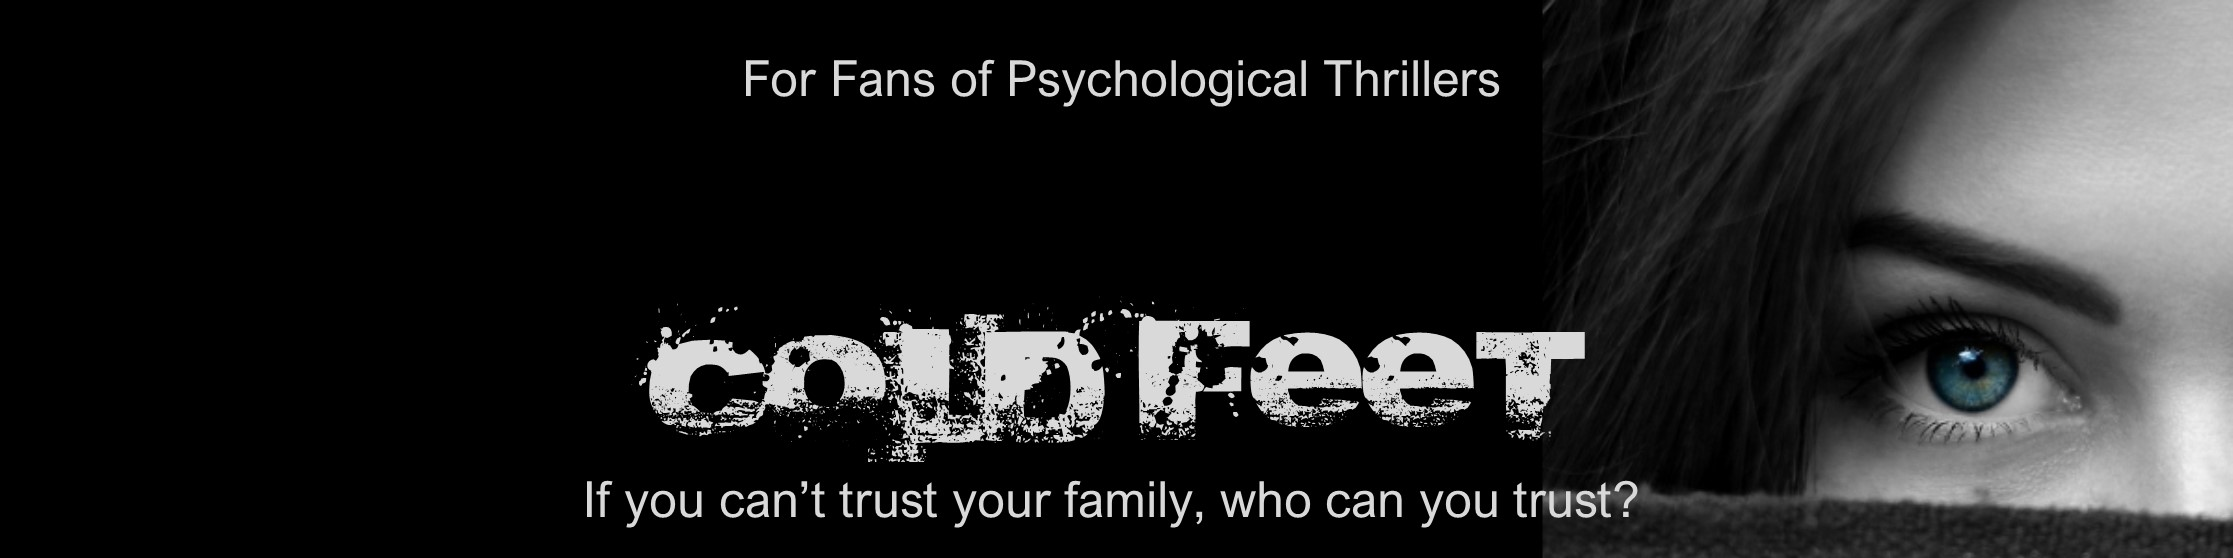 Cold Feet - For fans of Psychological Thrillers